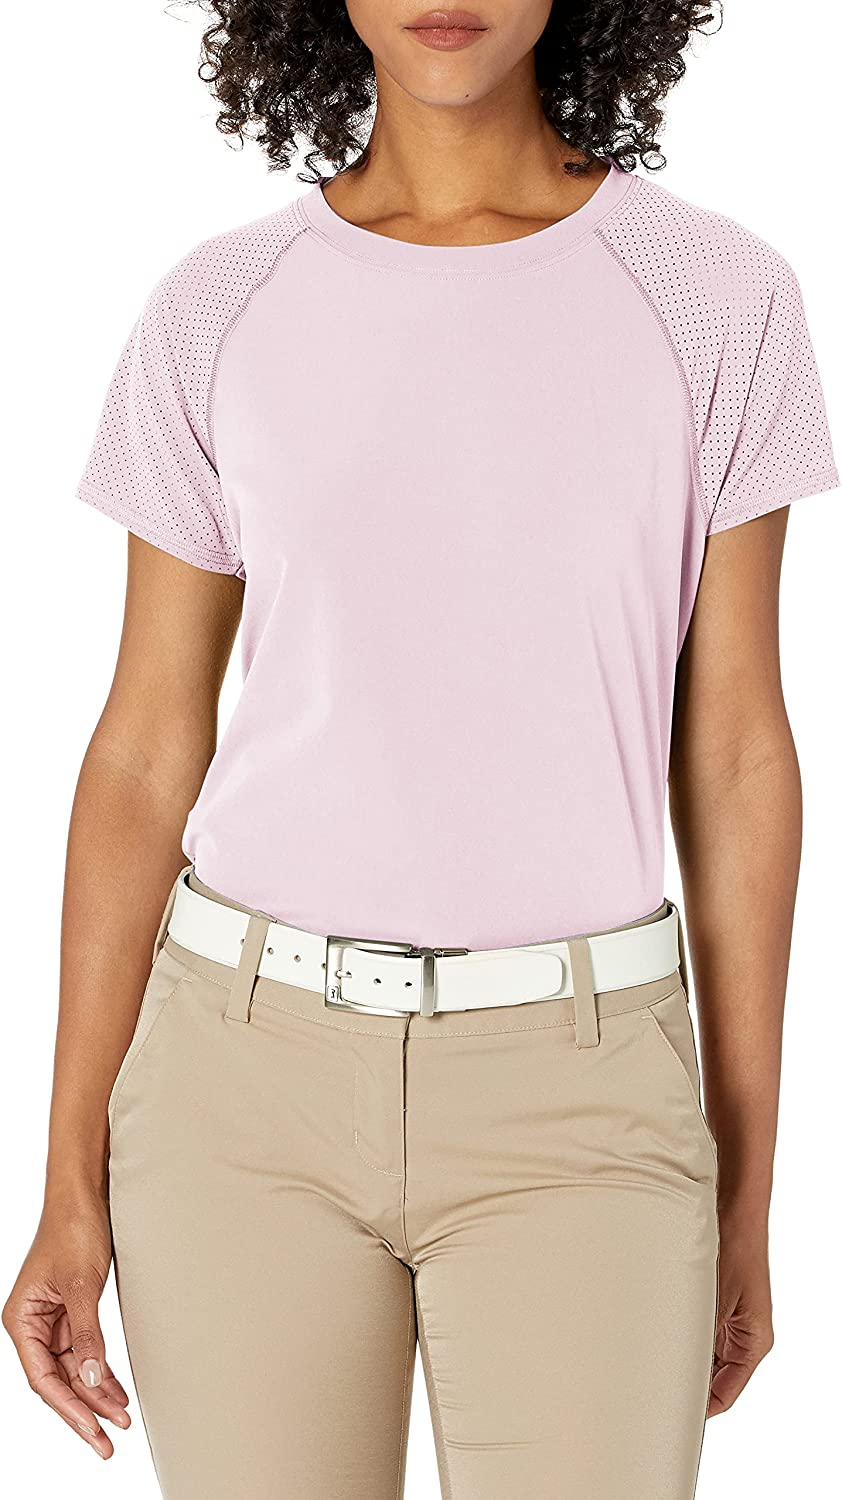 Cutter Buck Women's Short Quantity limited Sleeve Perforated Active Response Cr National uniform free shipping